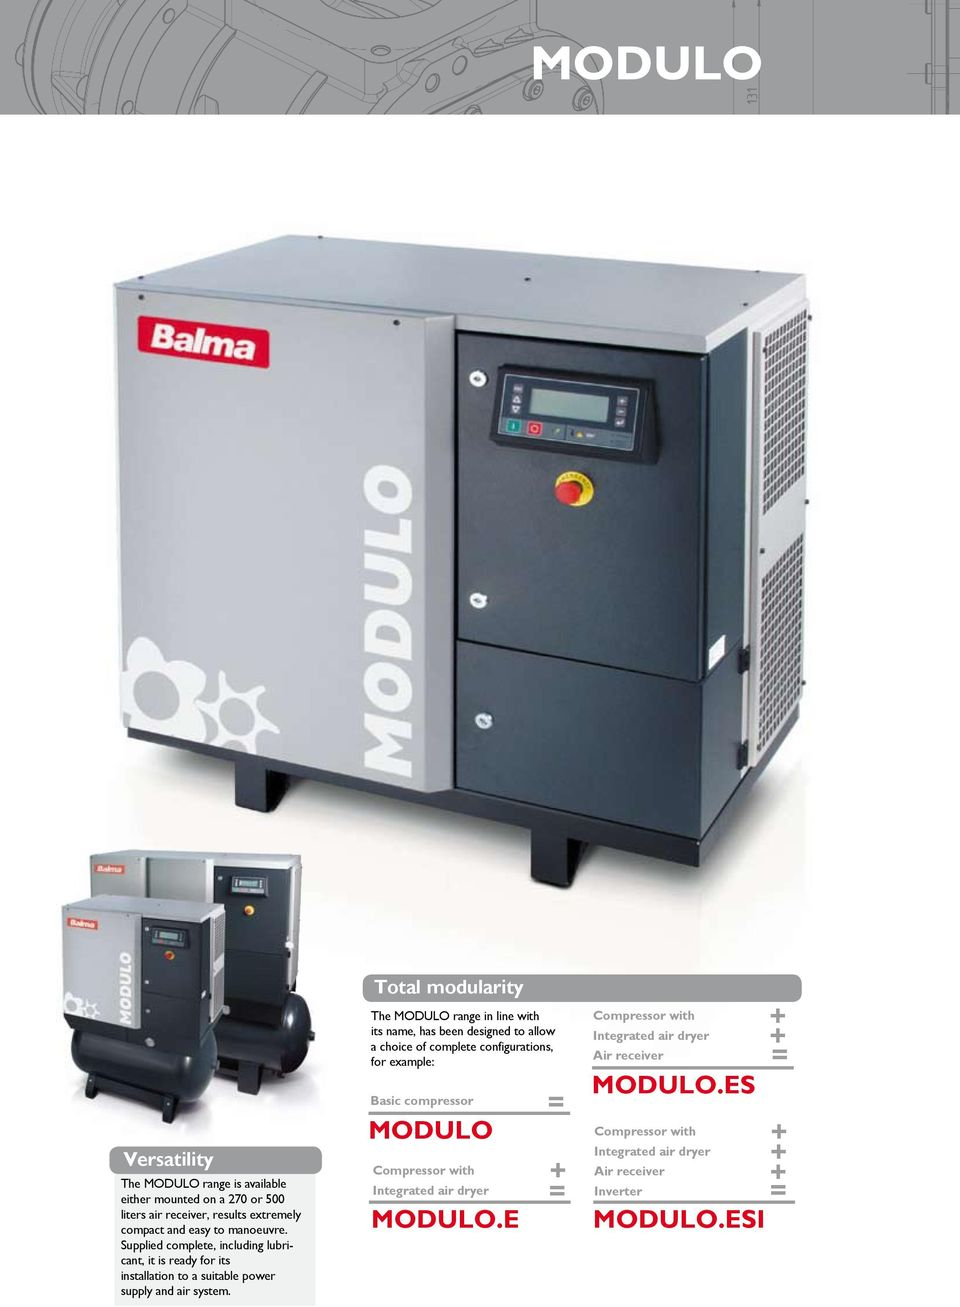 Total modularity The MODULO range in line with its name, has been designed to allow a choice of complete configurations, for example: Basic compressor